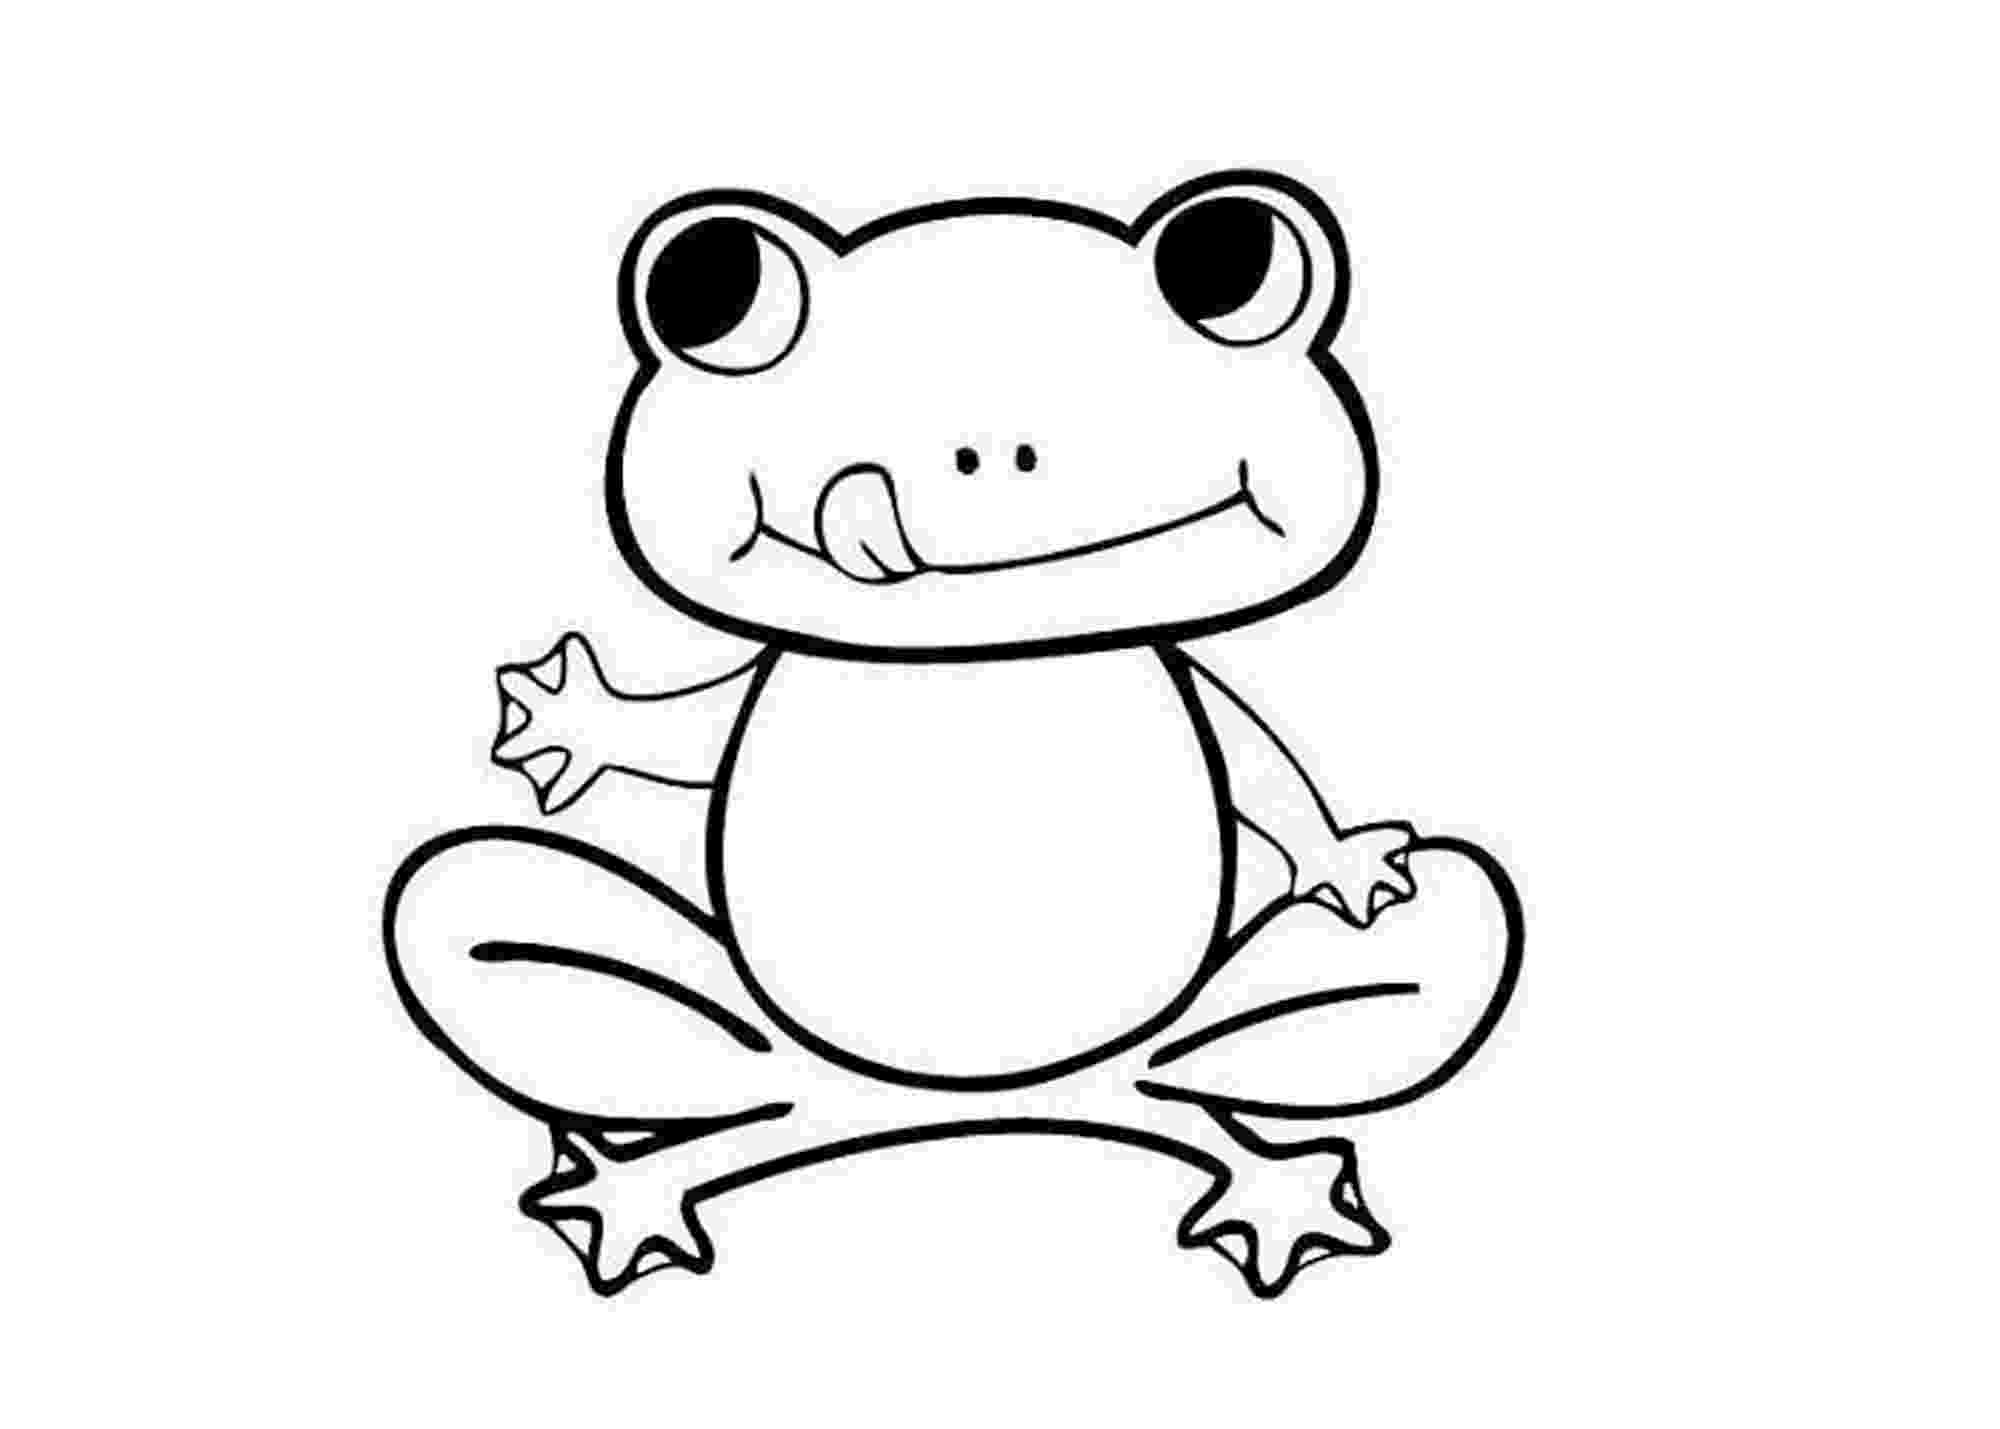 toad pictures to print frog coloring pages coloring pages to print toad print pictures to